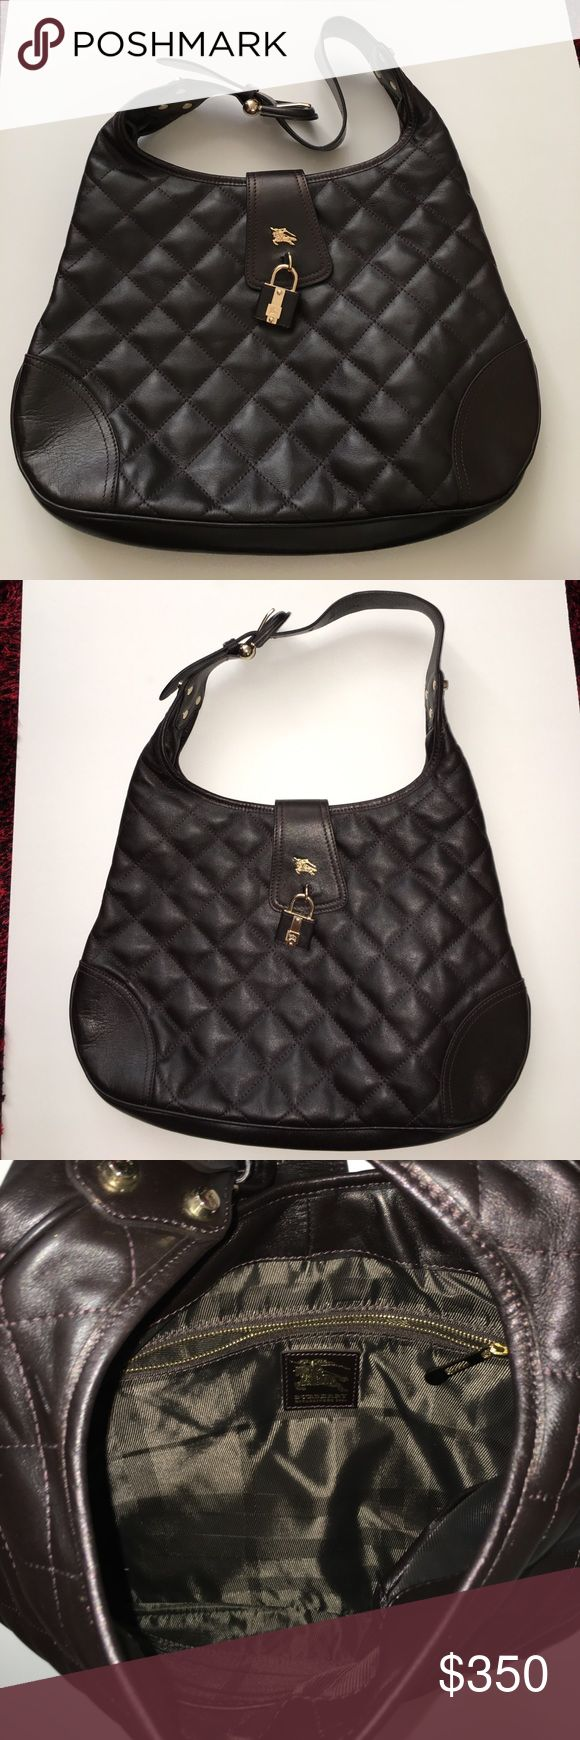 """BURBERRY HOBO QUILTED BROWN LEATHER BAG NWOT. BURBERRY HOBO QUILTED BROWN LEATHER BAG.      Size: Length: 16"""", Height: 11"""", Depth: 2"""", Drop: adj"""". Burberry Bags Hobos"""